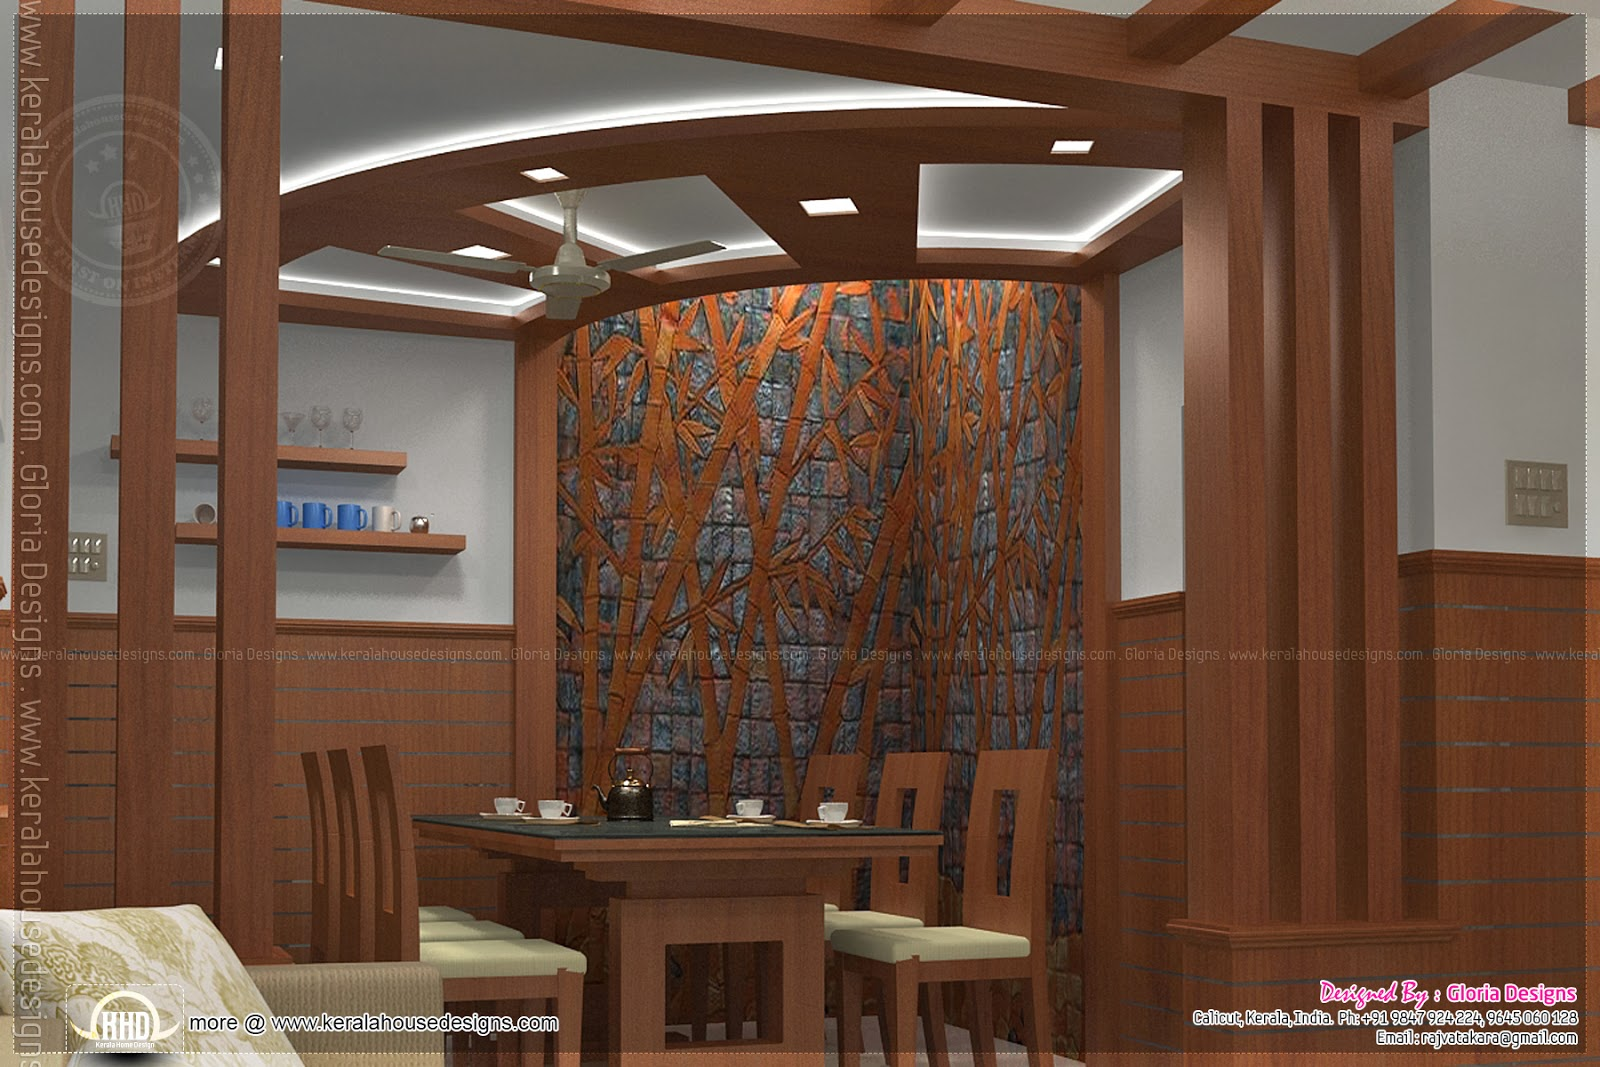 Home interior designs by gloria designs calicut kerala home design and floor plans for Interior design for home photos